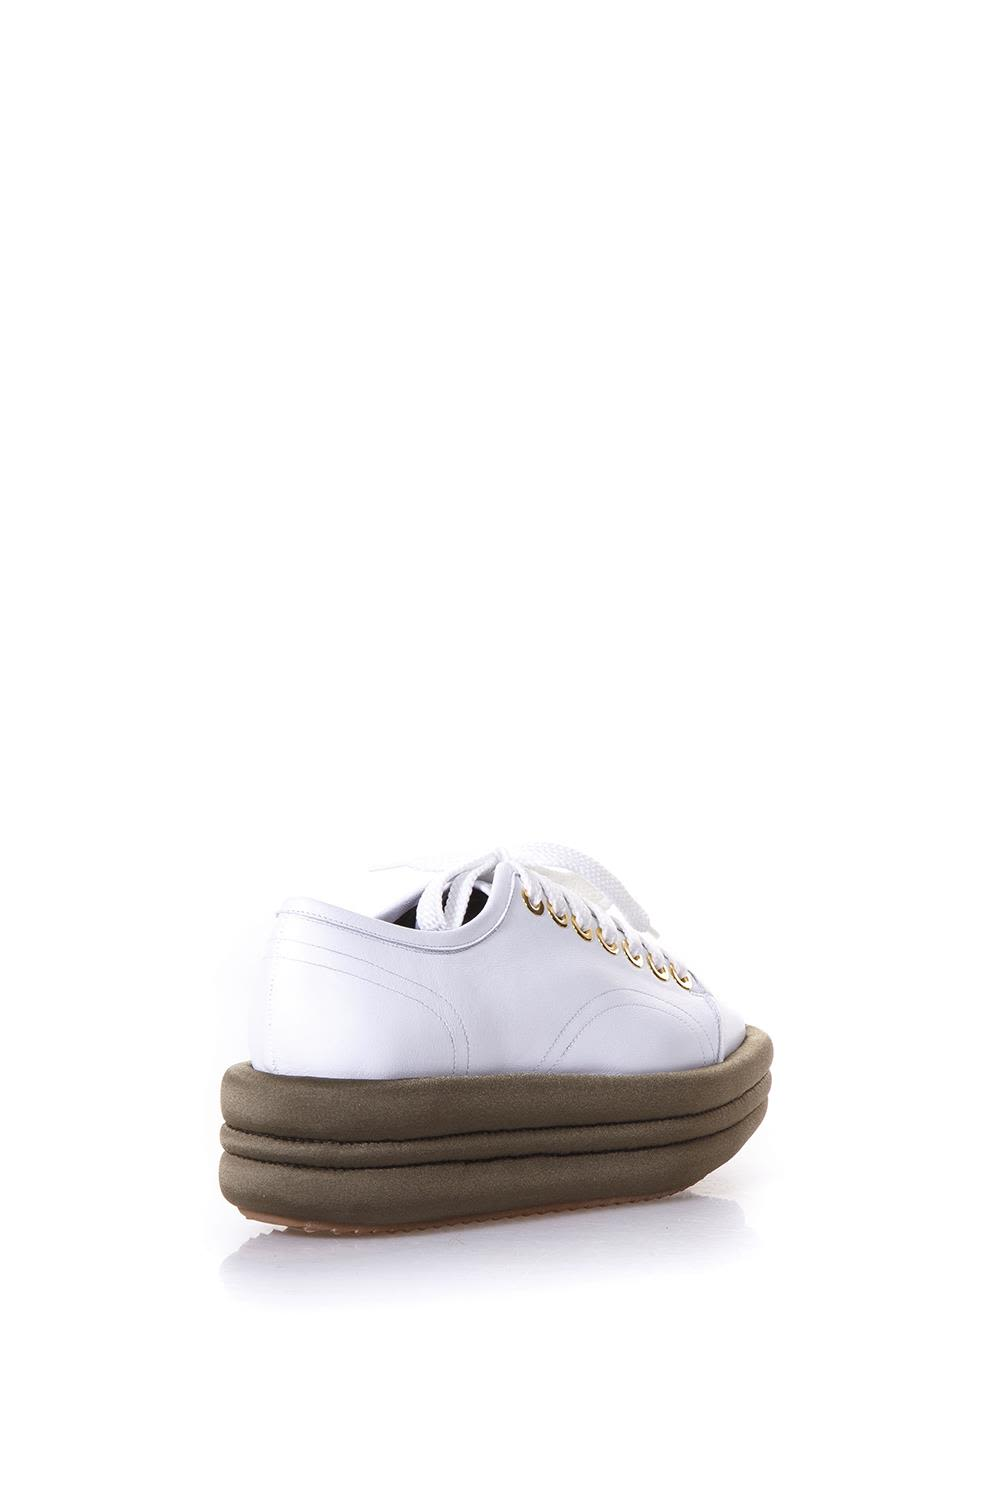 MARC ELLIS Diva White Leather & Military Platform Sneakers For Sale Top Quality Sexy Sport Collections 8jFt5